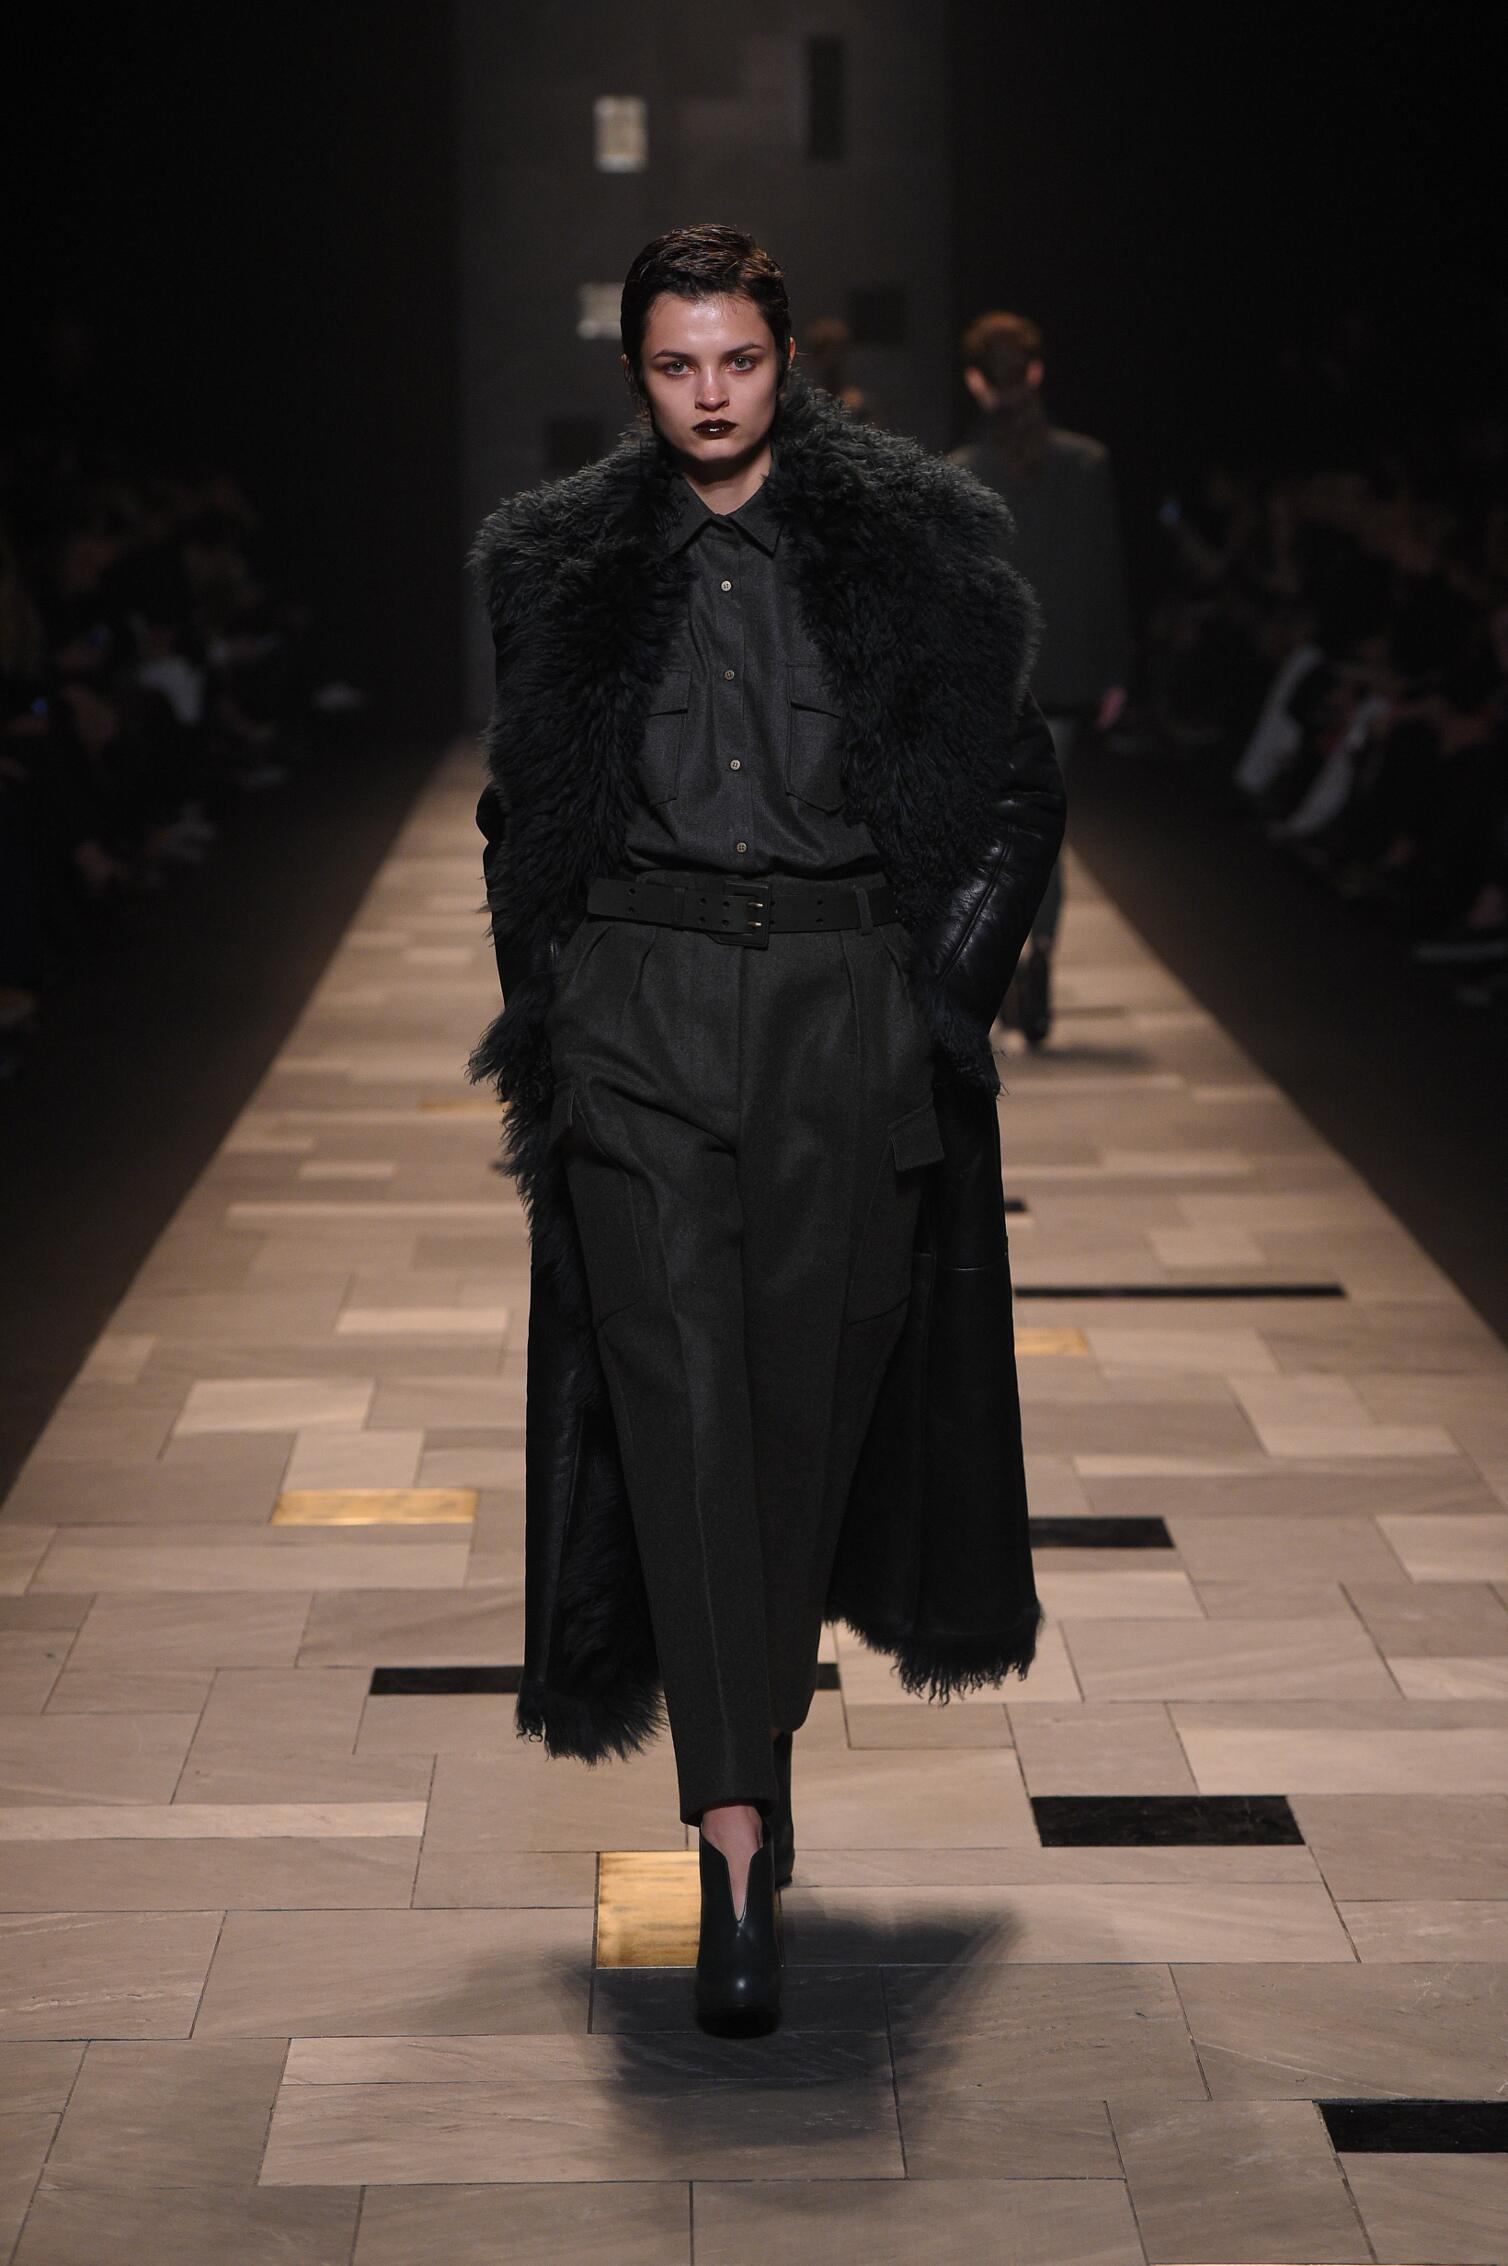 Winter Fashion Trends 2015 2016 Trussardi Collection